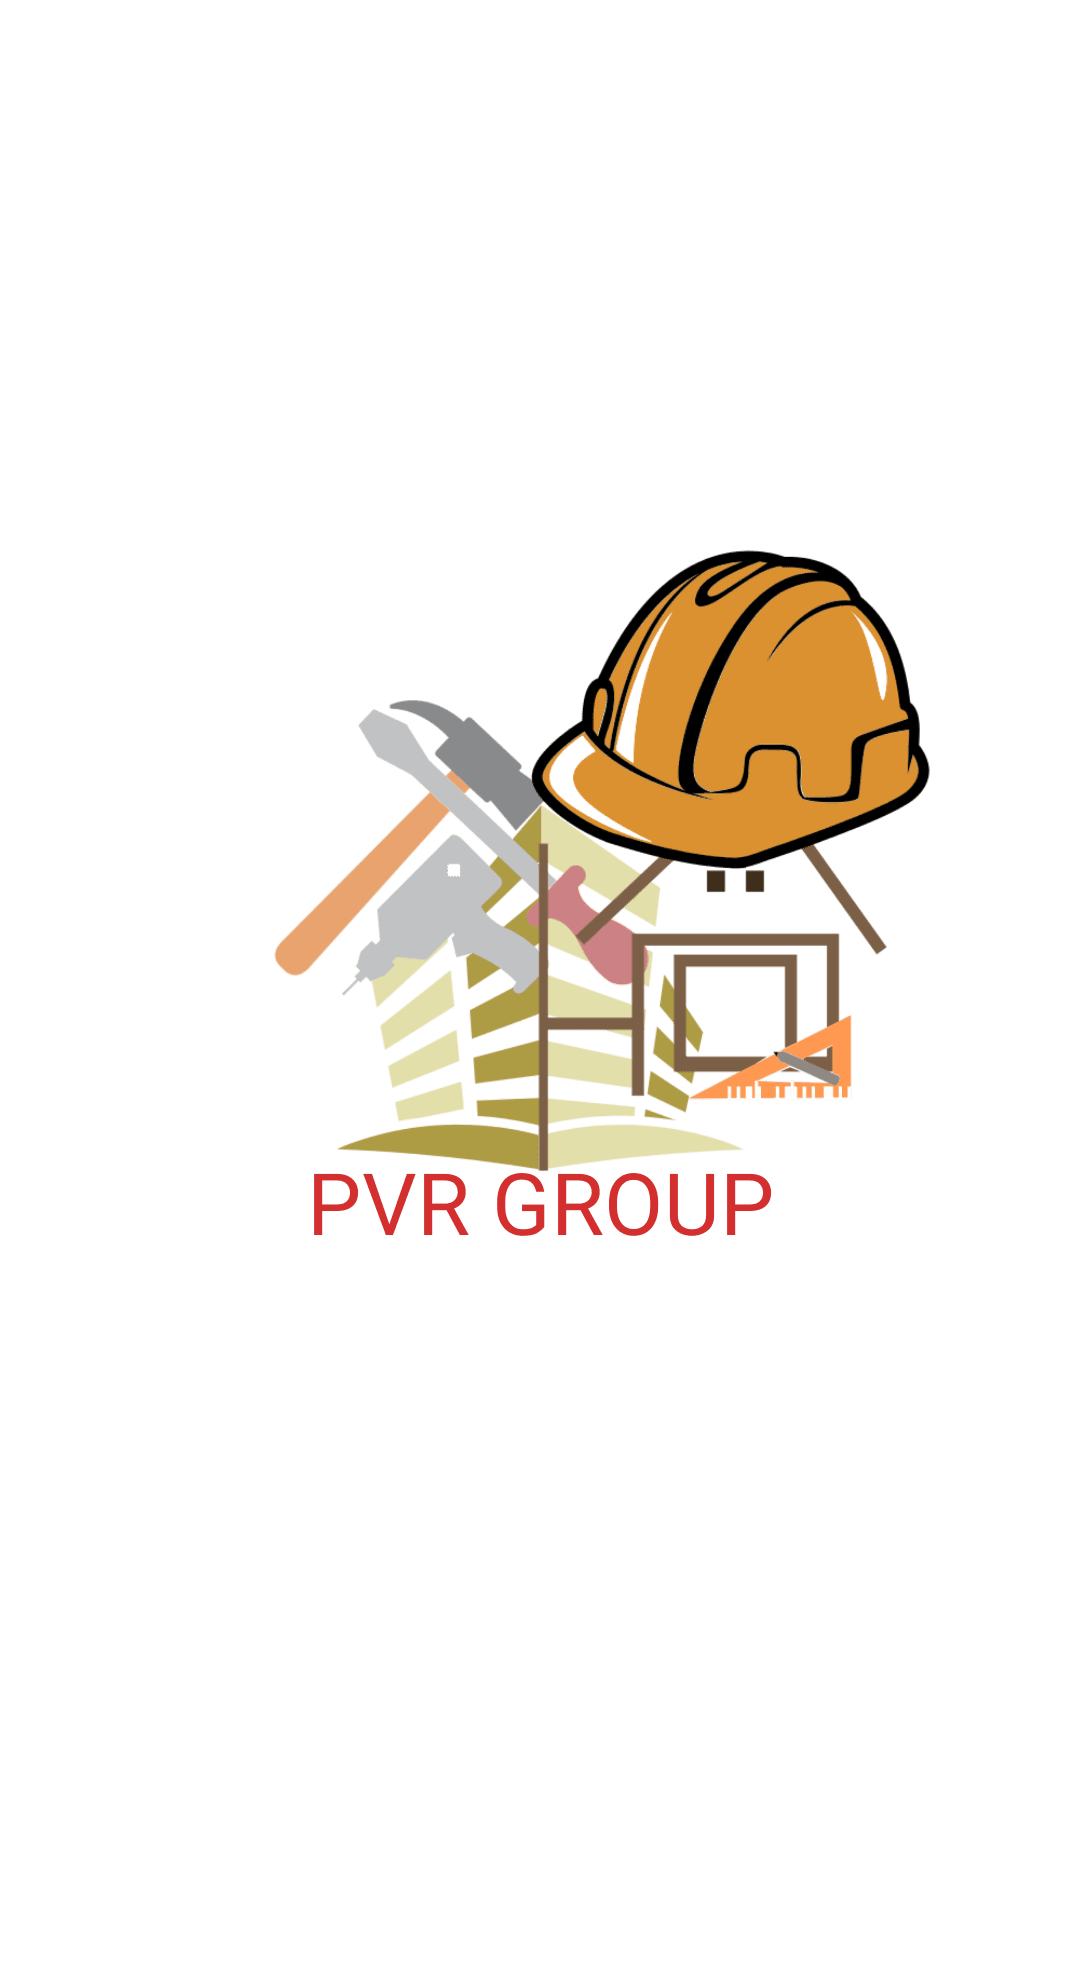 PVR GROUP